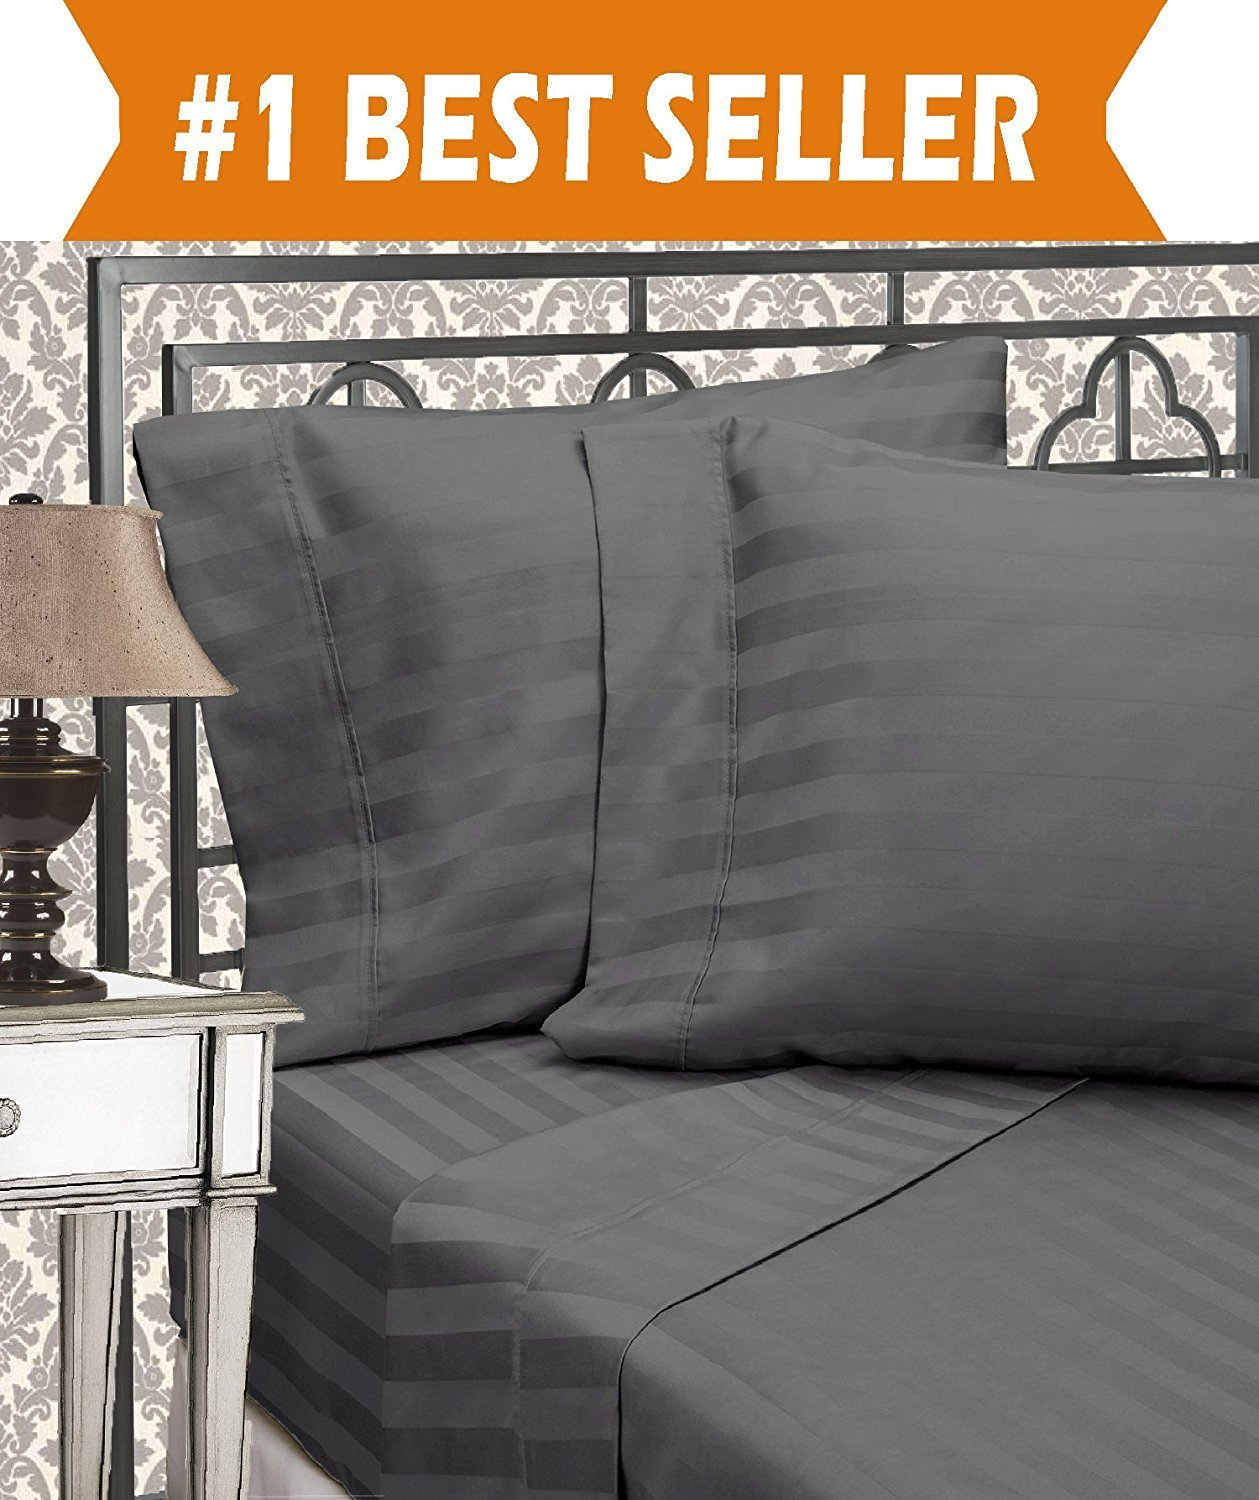 Elegant Comfort Best, Softest, Coziest 6-Piece Sheet Sets! - 1500 Thread Count Egyptian Quality Luxurious Wrinkle Resistant 6-Piece DAMASK STRIPE Bed Sheet Set, King Grey